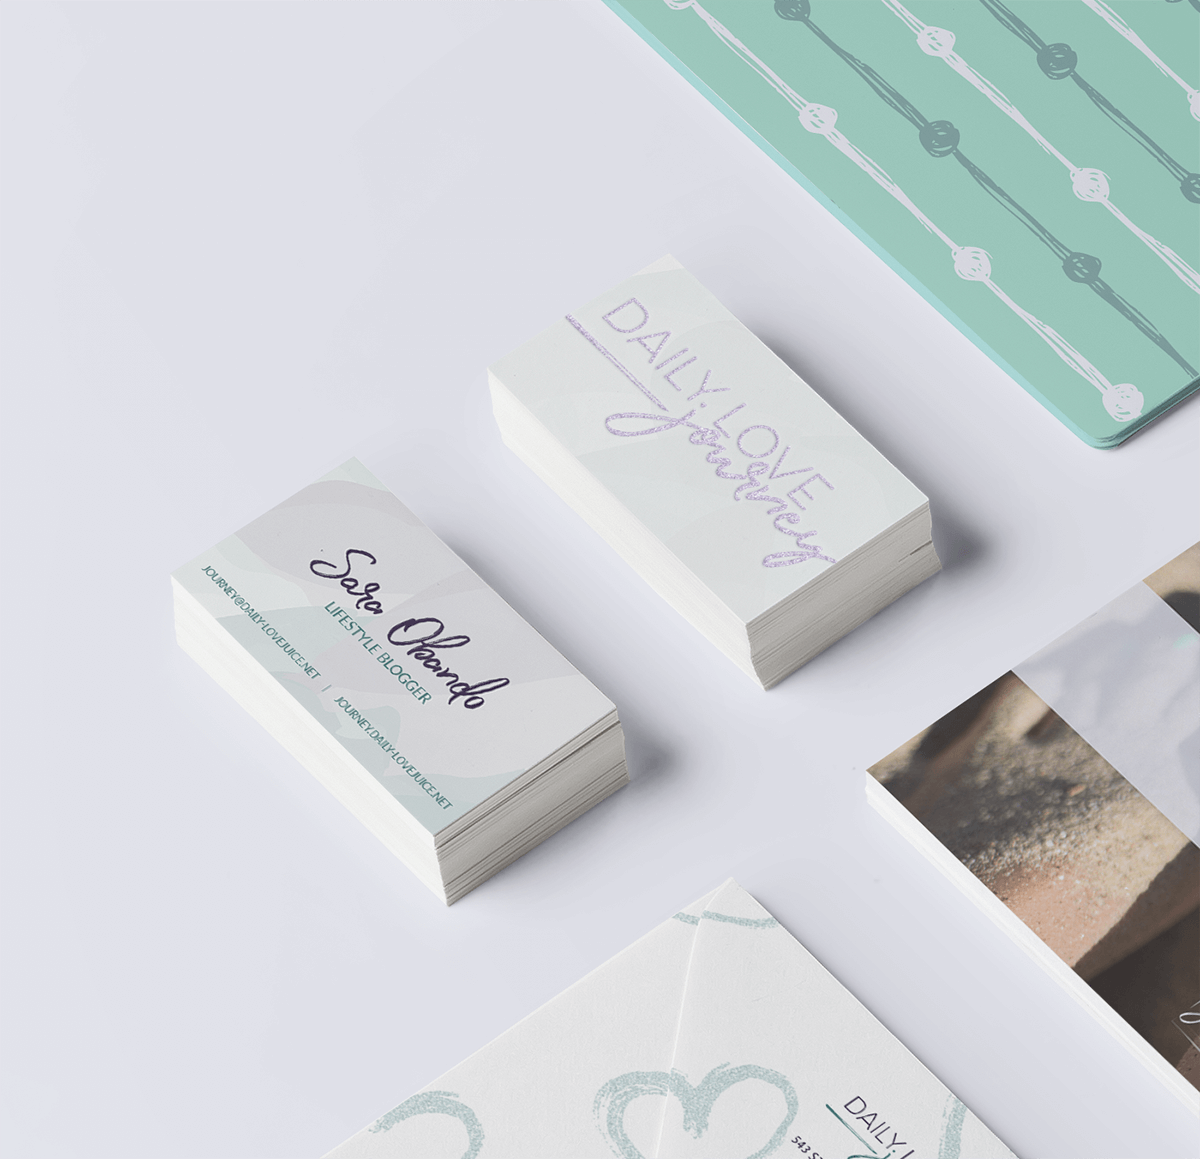 Stationery closeup of the business cards for Daily Love Journey